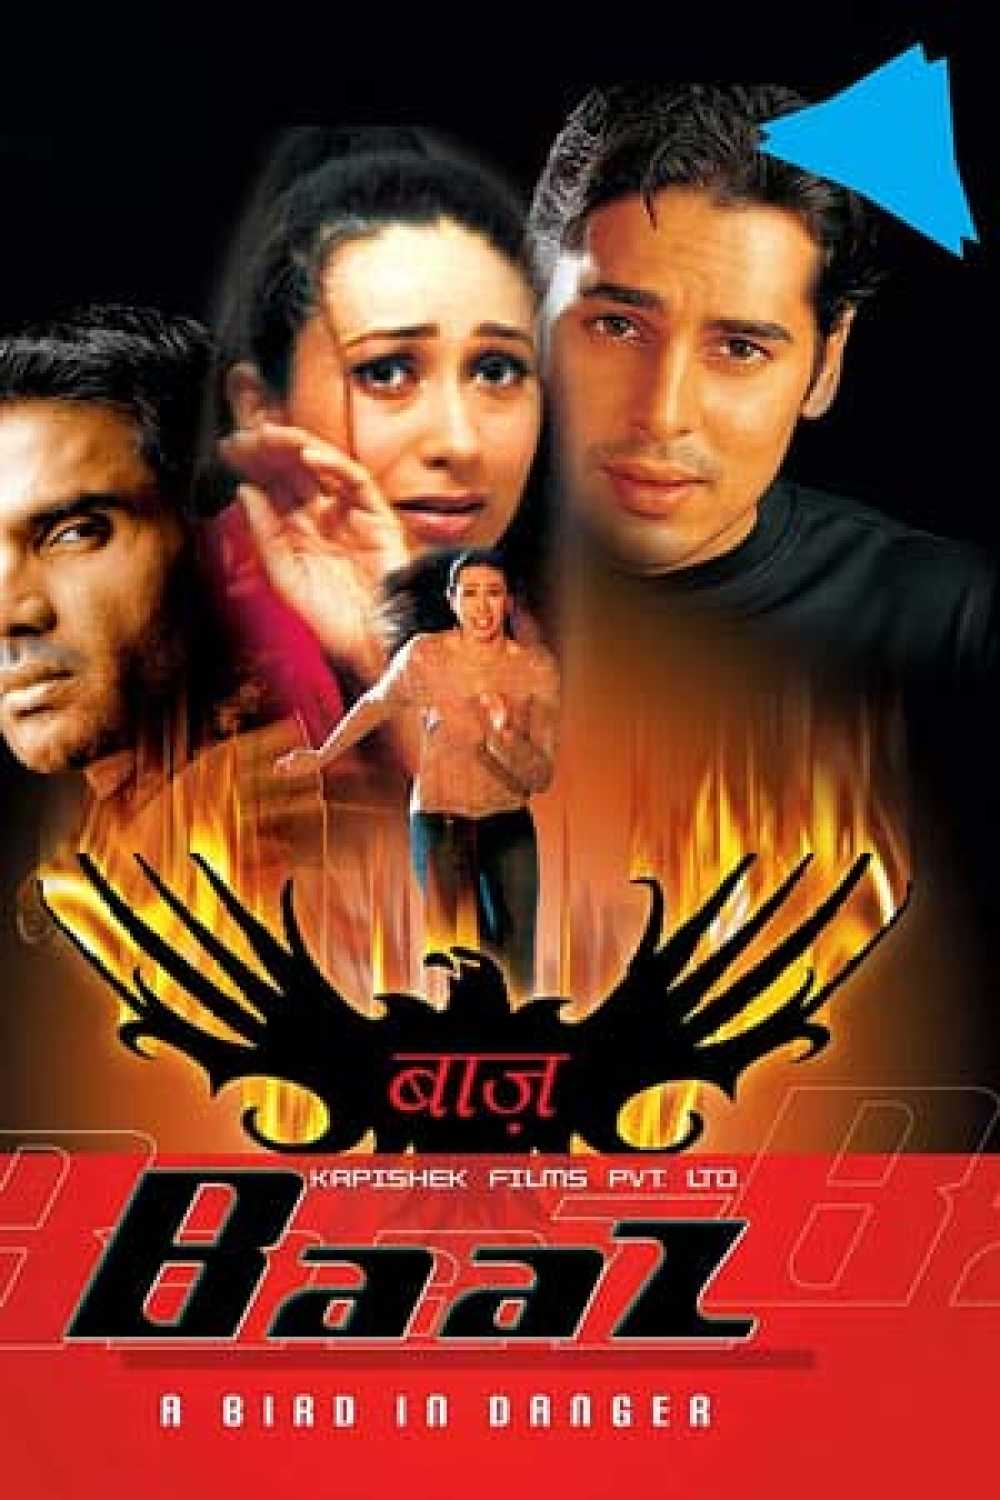 Baaz A Bird in Danger 2003 Hindi 500MB HDRip 480p ESubs Download